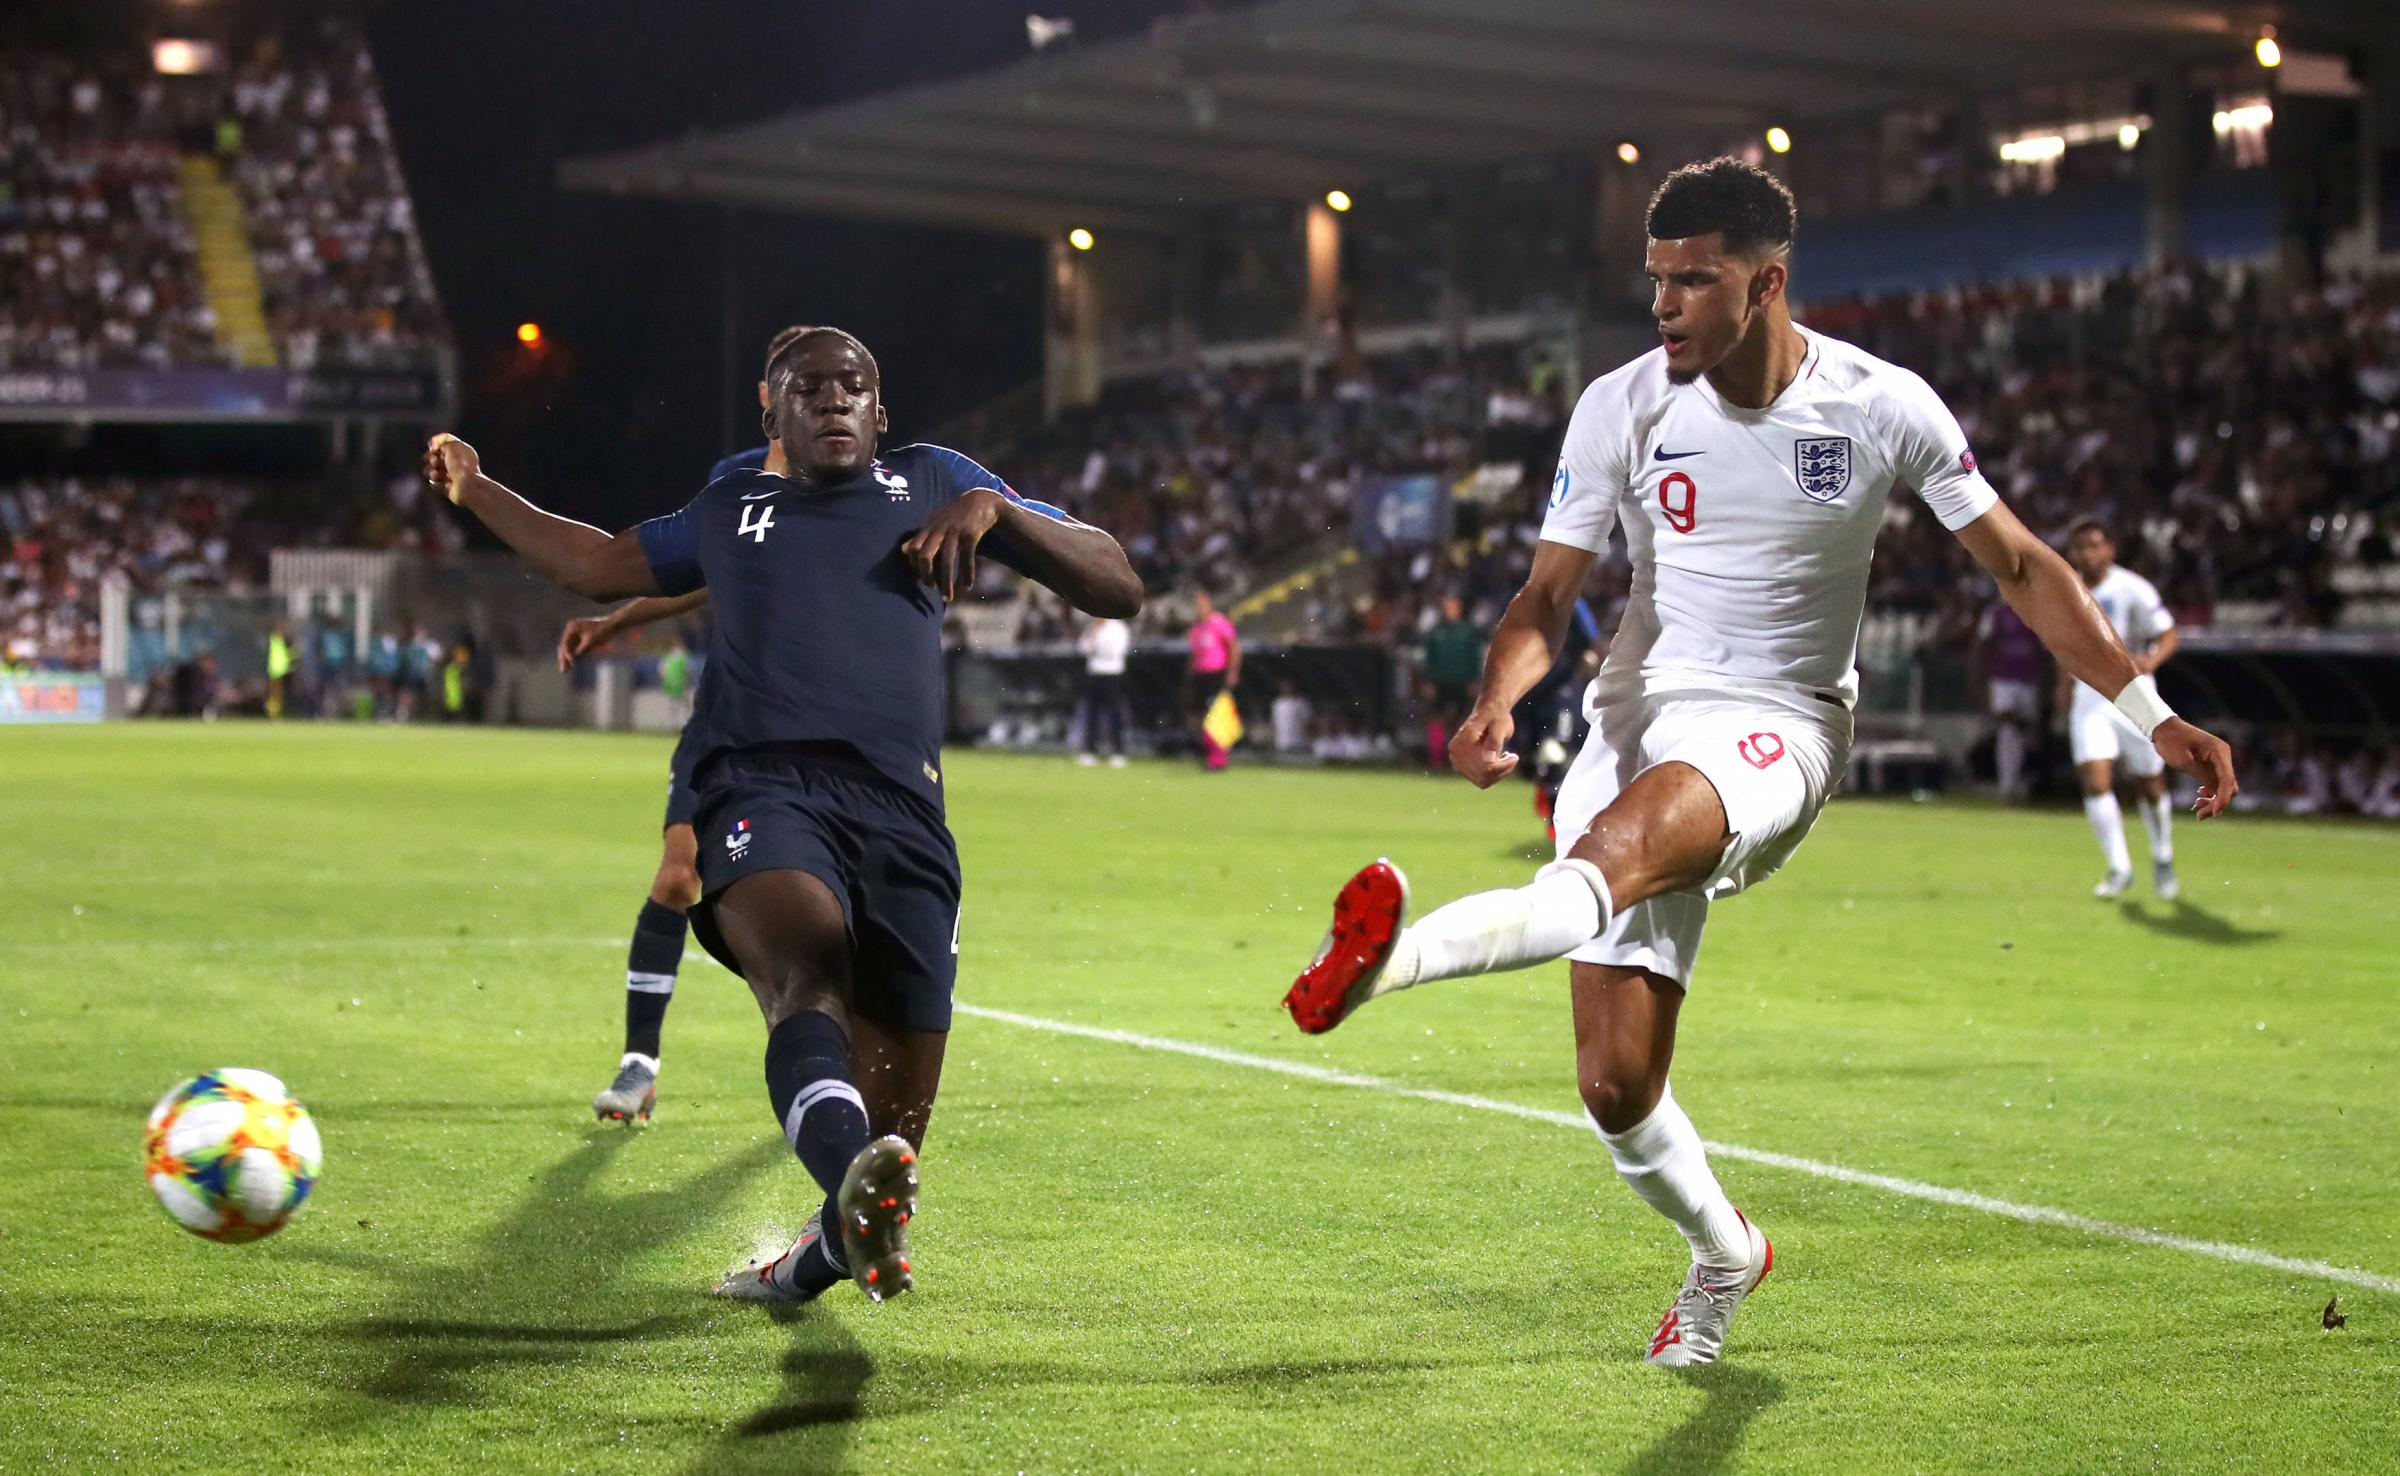 England under-21s boss Aidy Boothroyd backs Dominic Solanke to succeed at AFC Bournemouth